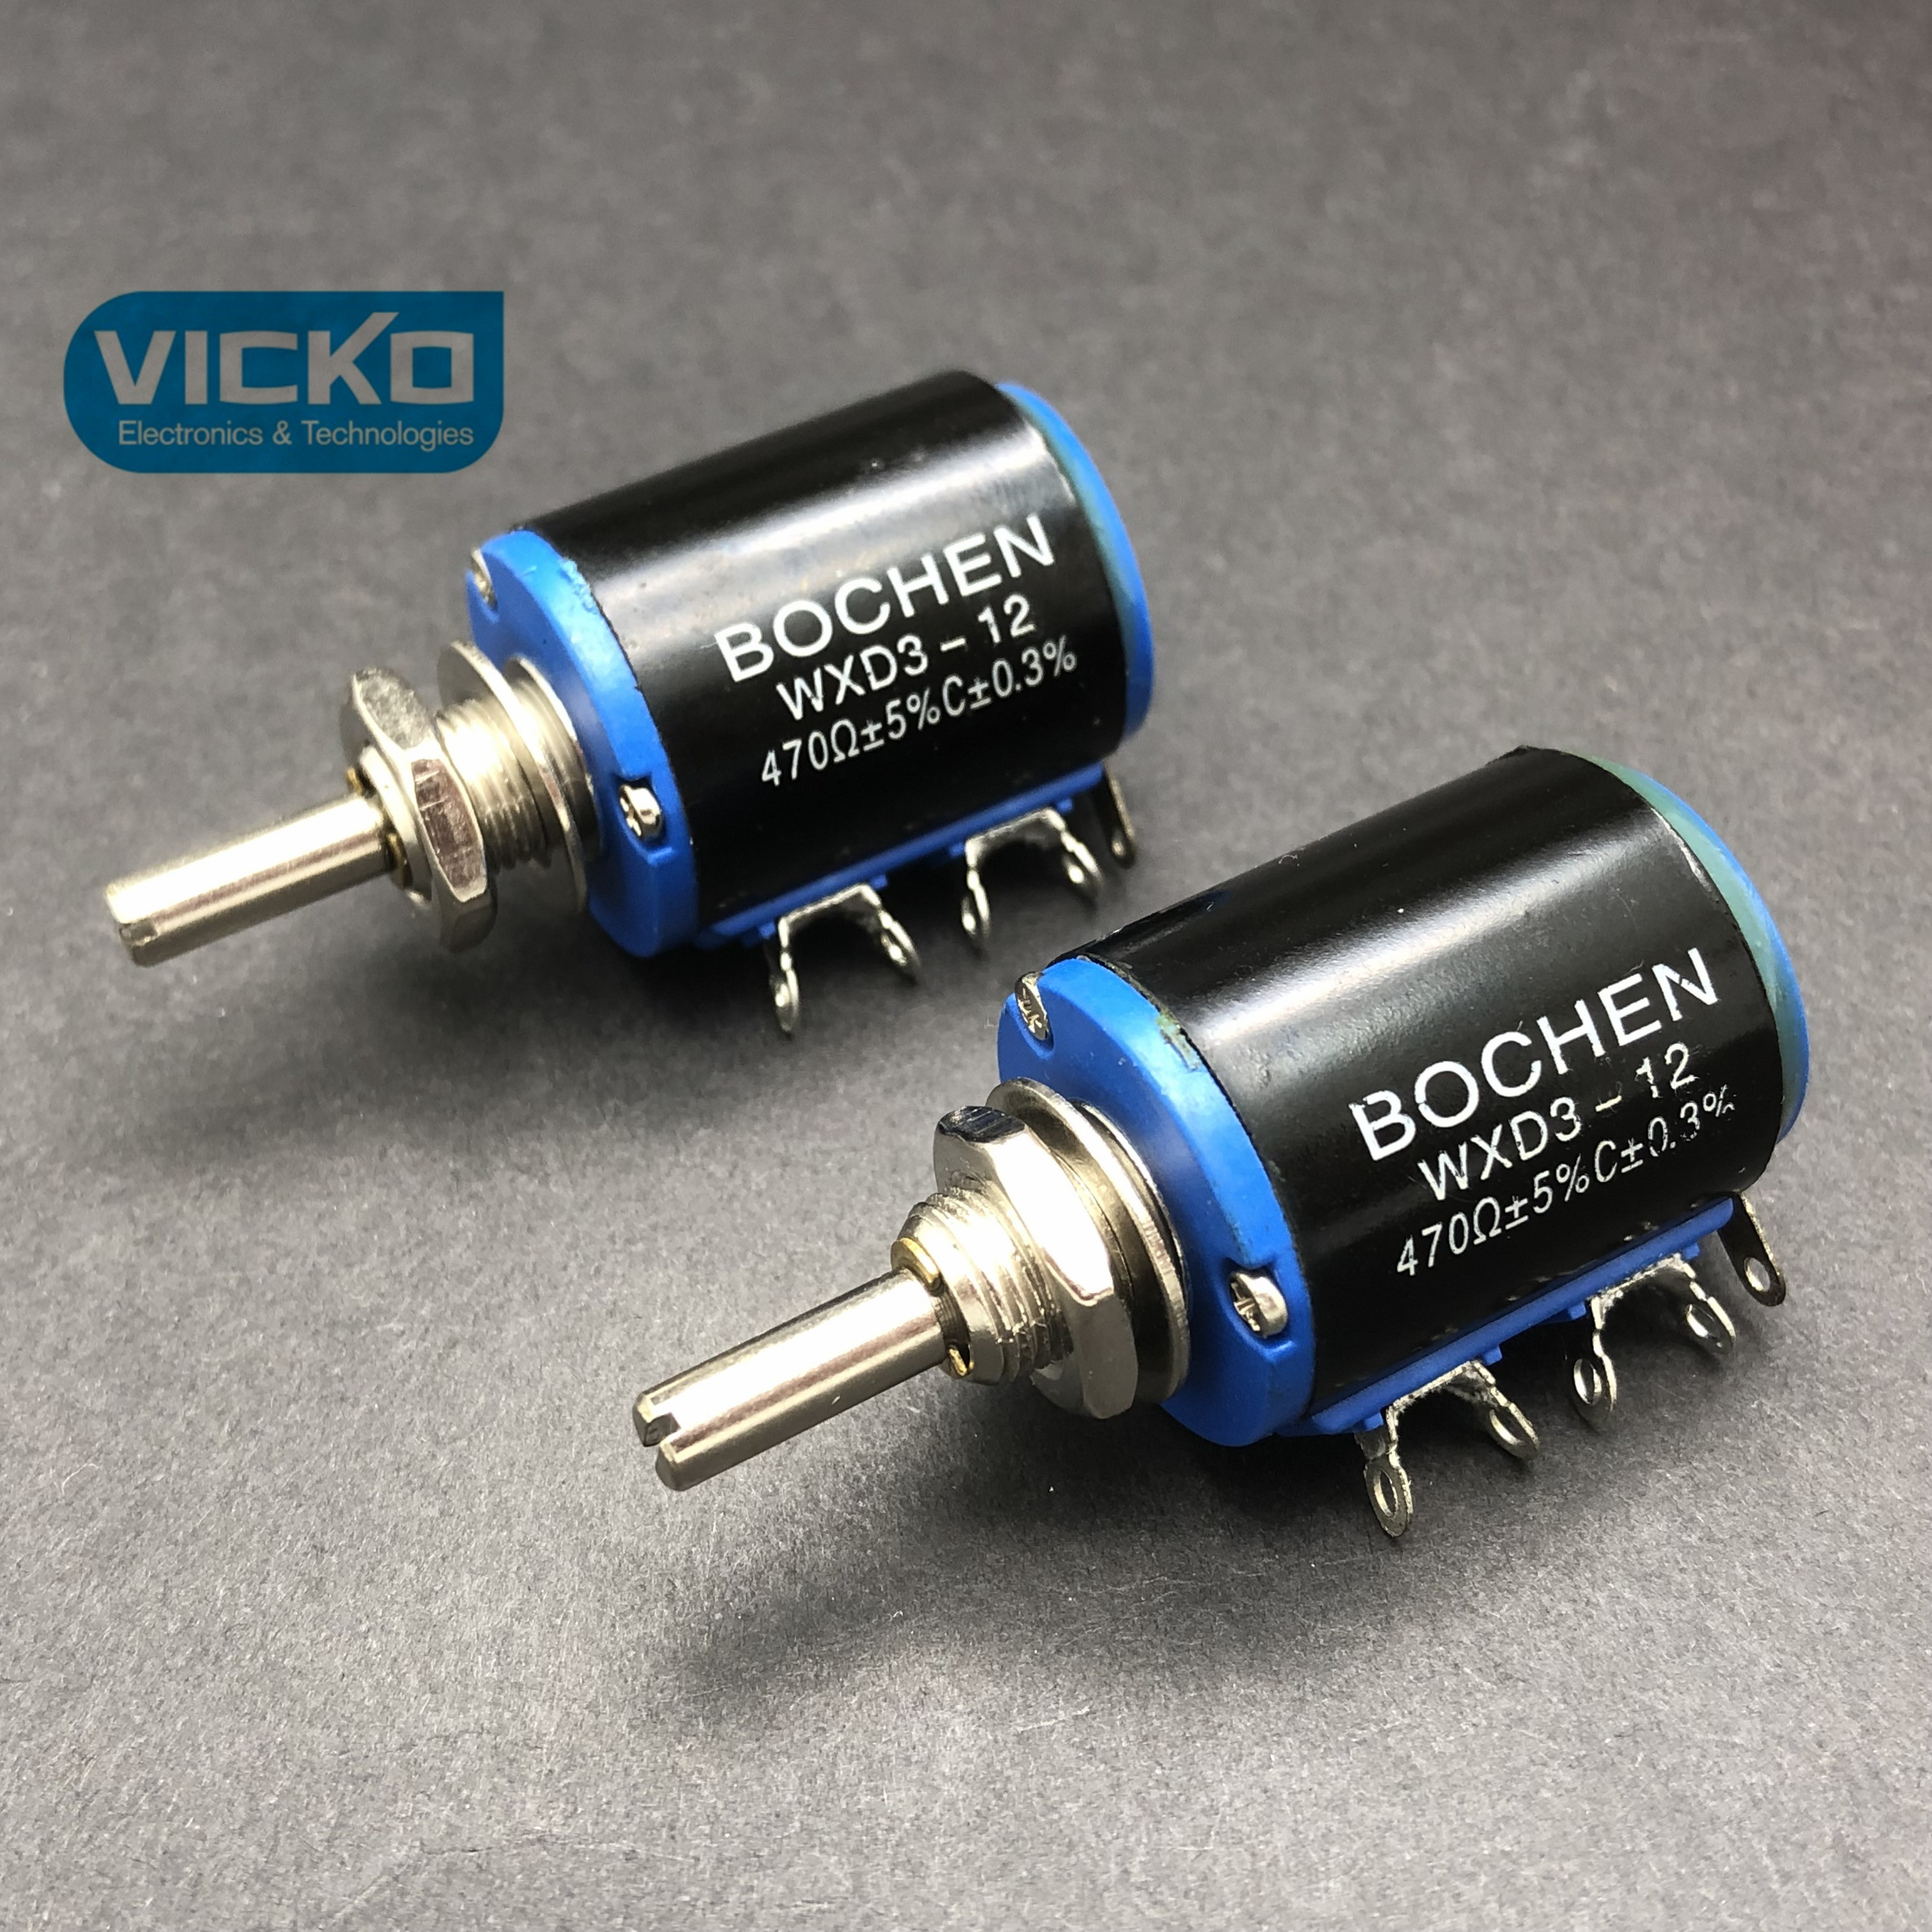 VK BOCHEN WXD3 12 precision multi turn around potentiometer 47K 470K 100R 220R 330R switch